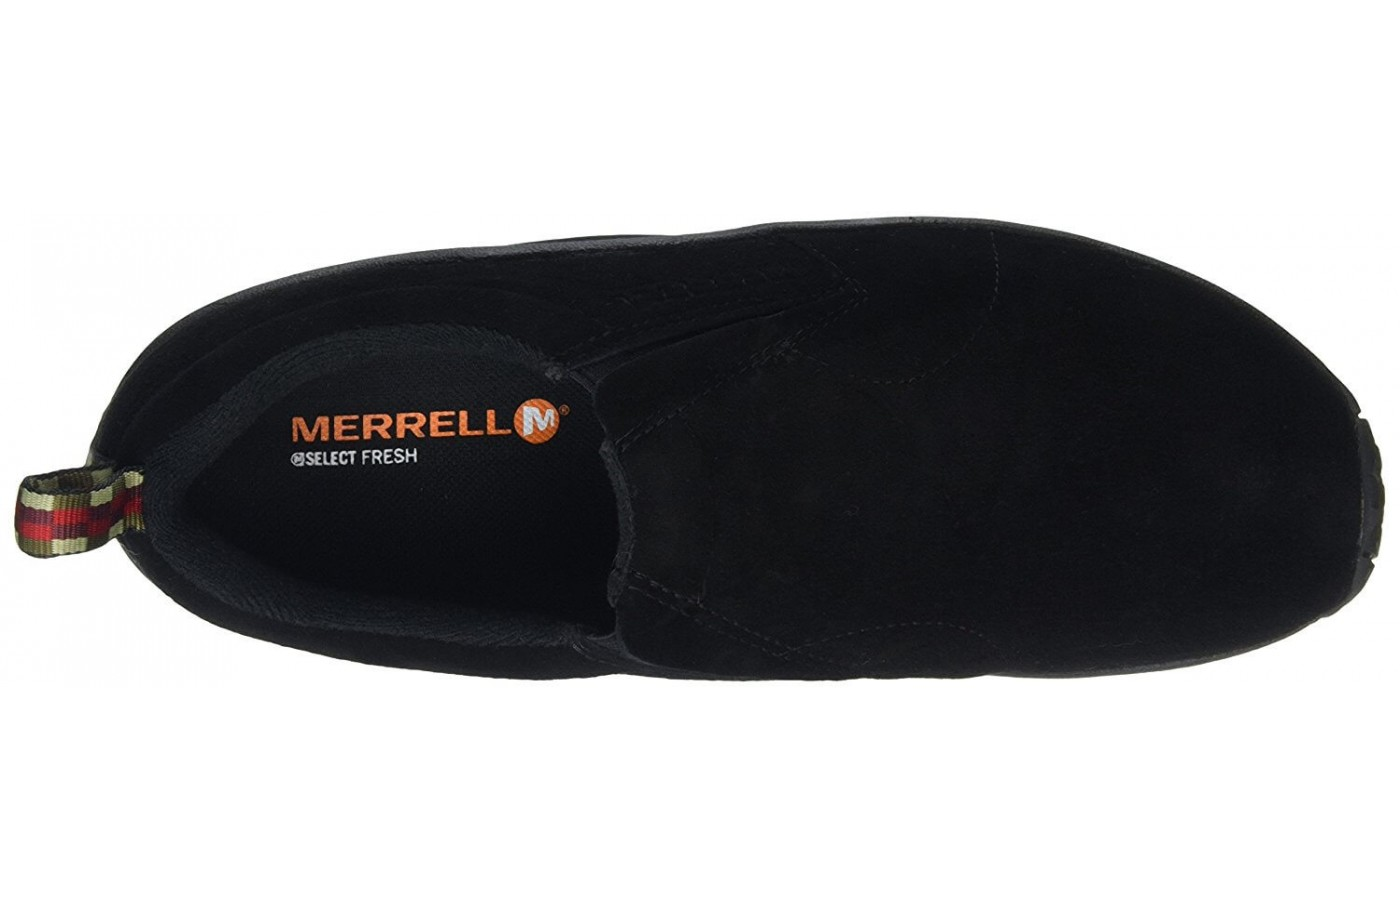 The Merrell Jungle Moc features an Aegis anti bacterial lining